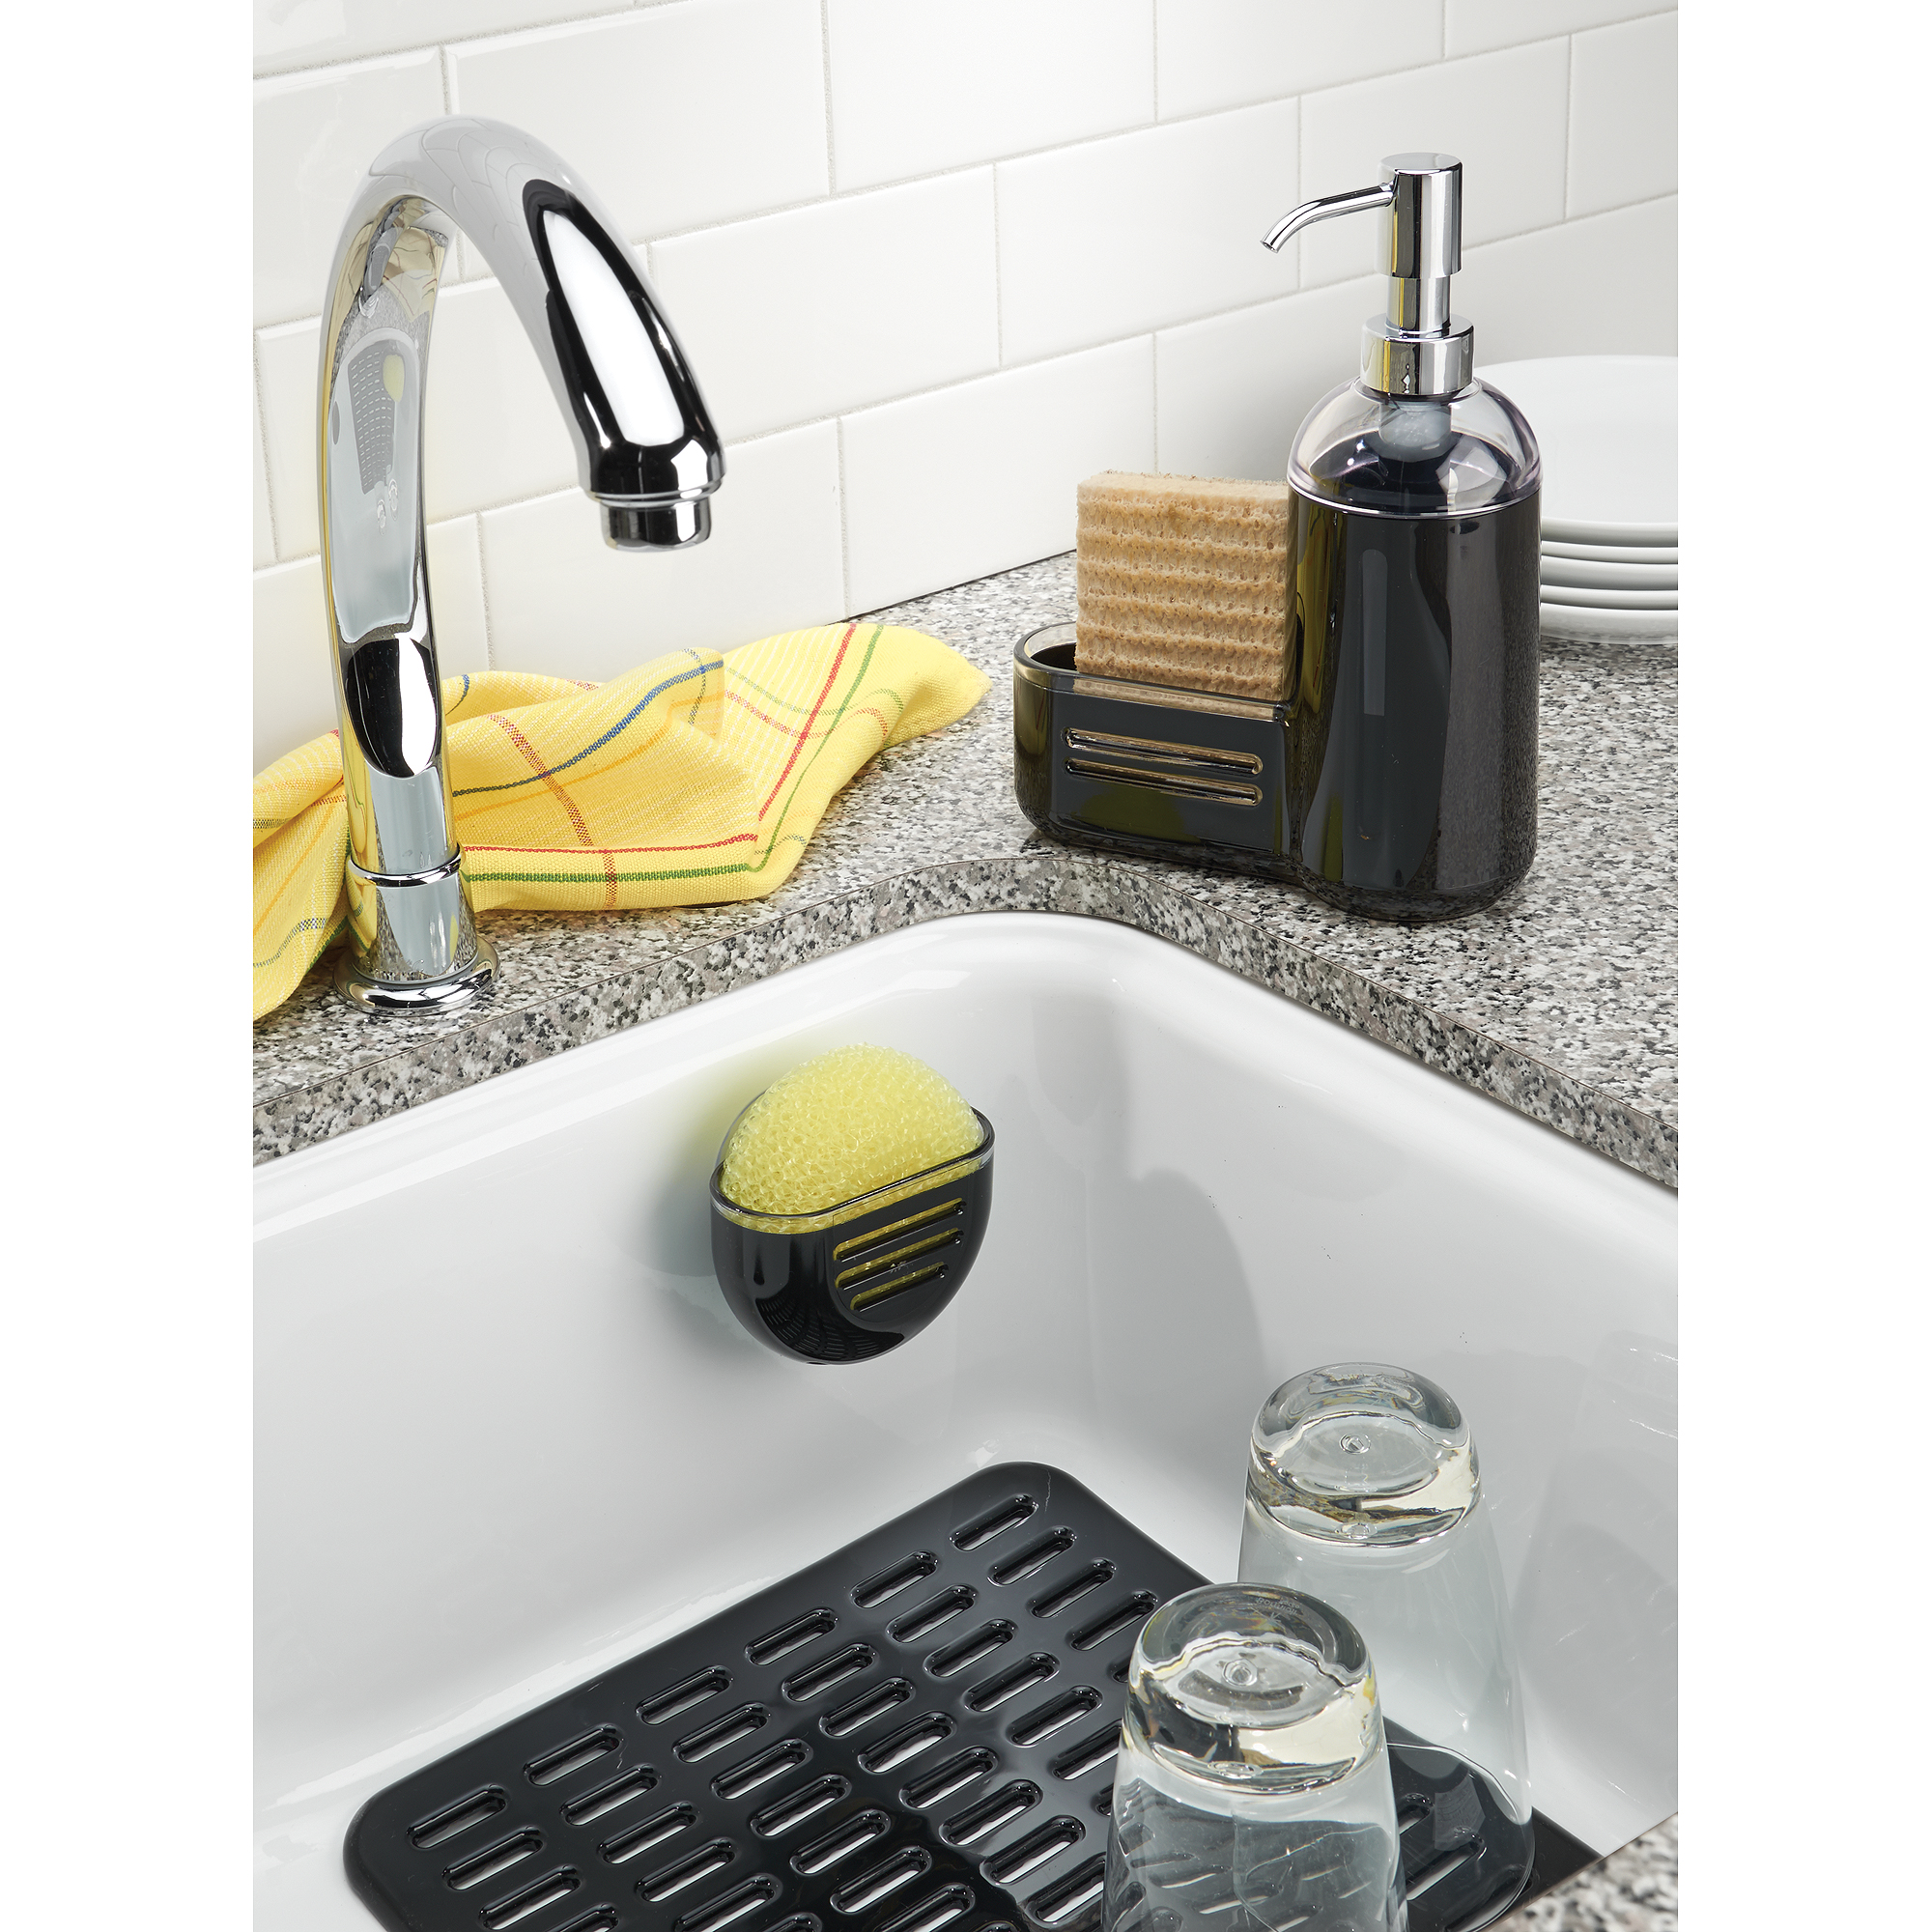 InterDesign Syncware Kitchen Sink Protector Mat, Large, Black   Walmart.com